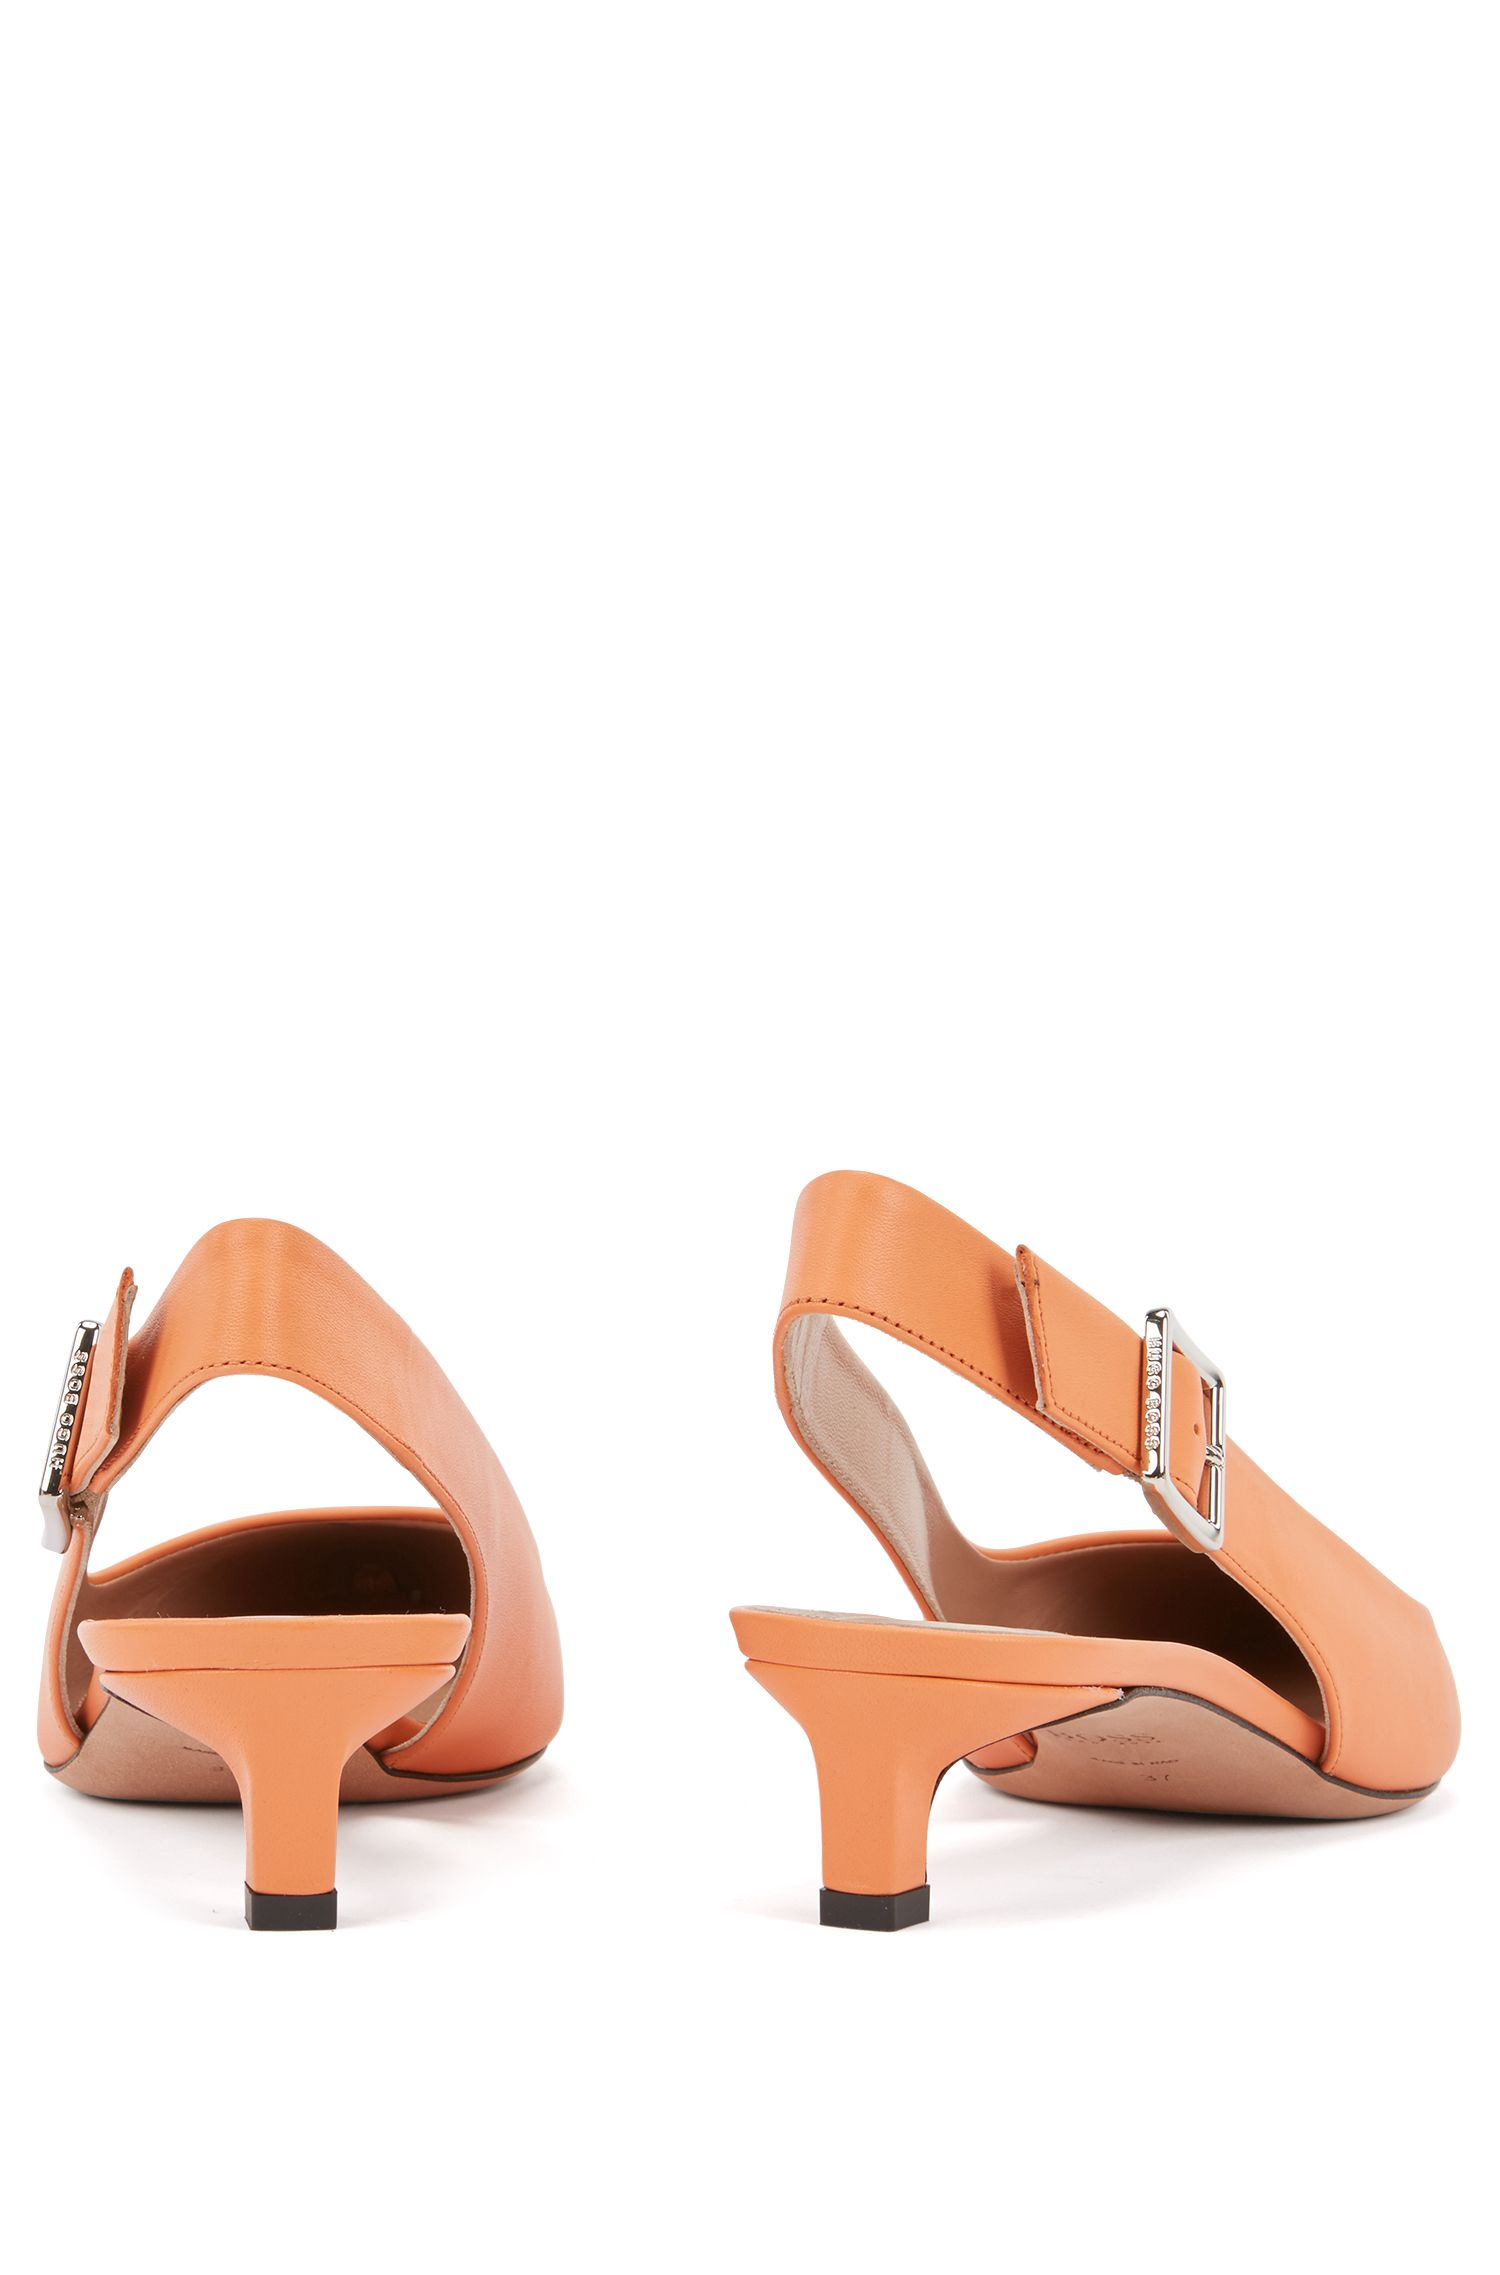 Pointed-toe slingback pumps in Italian calf leather, Orange